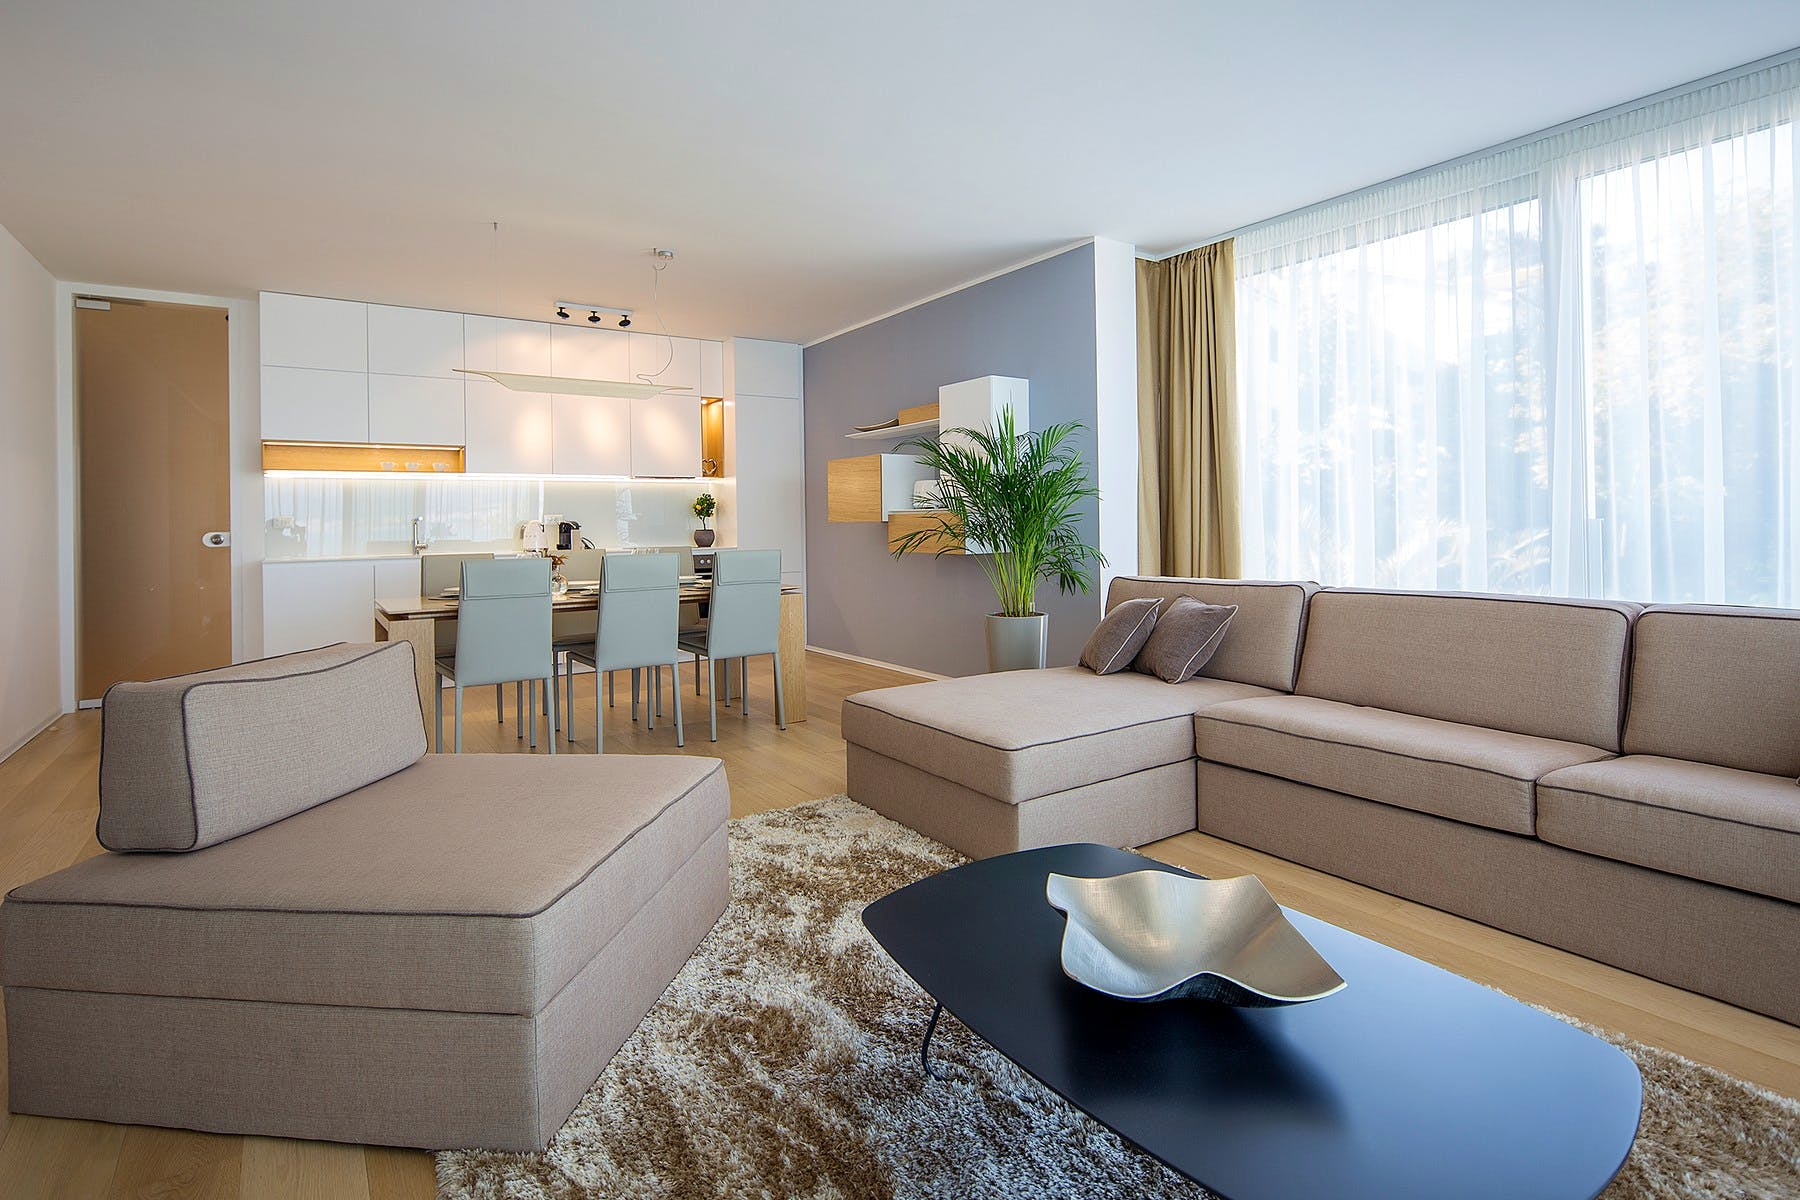 Open space living area with kitchen, dining room and living room